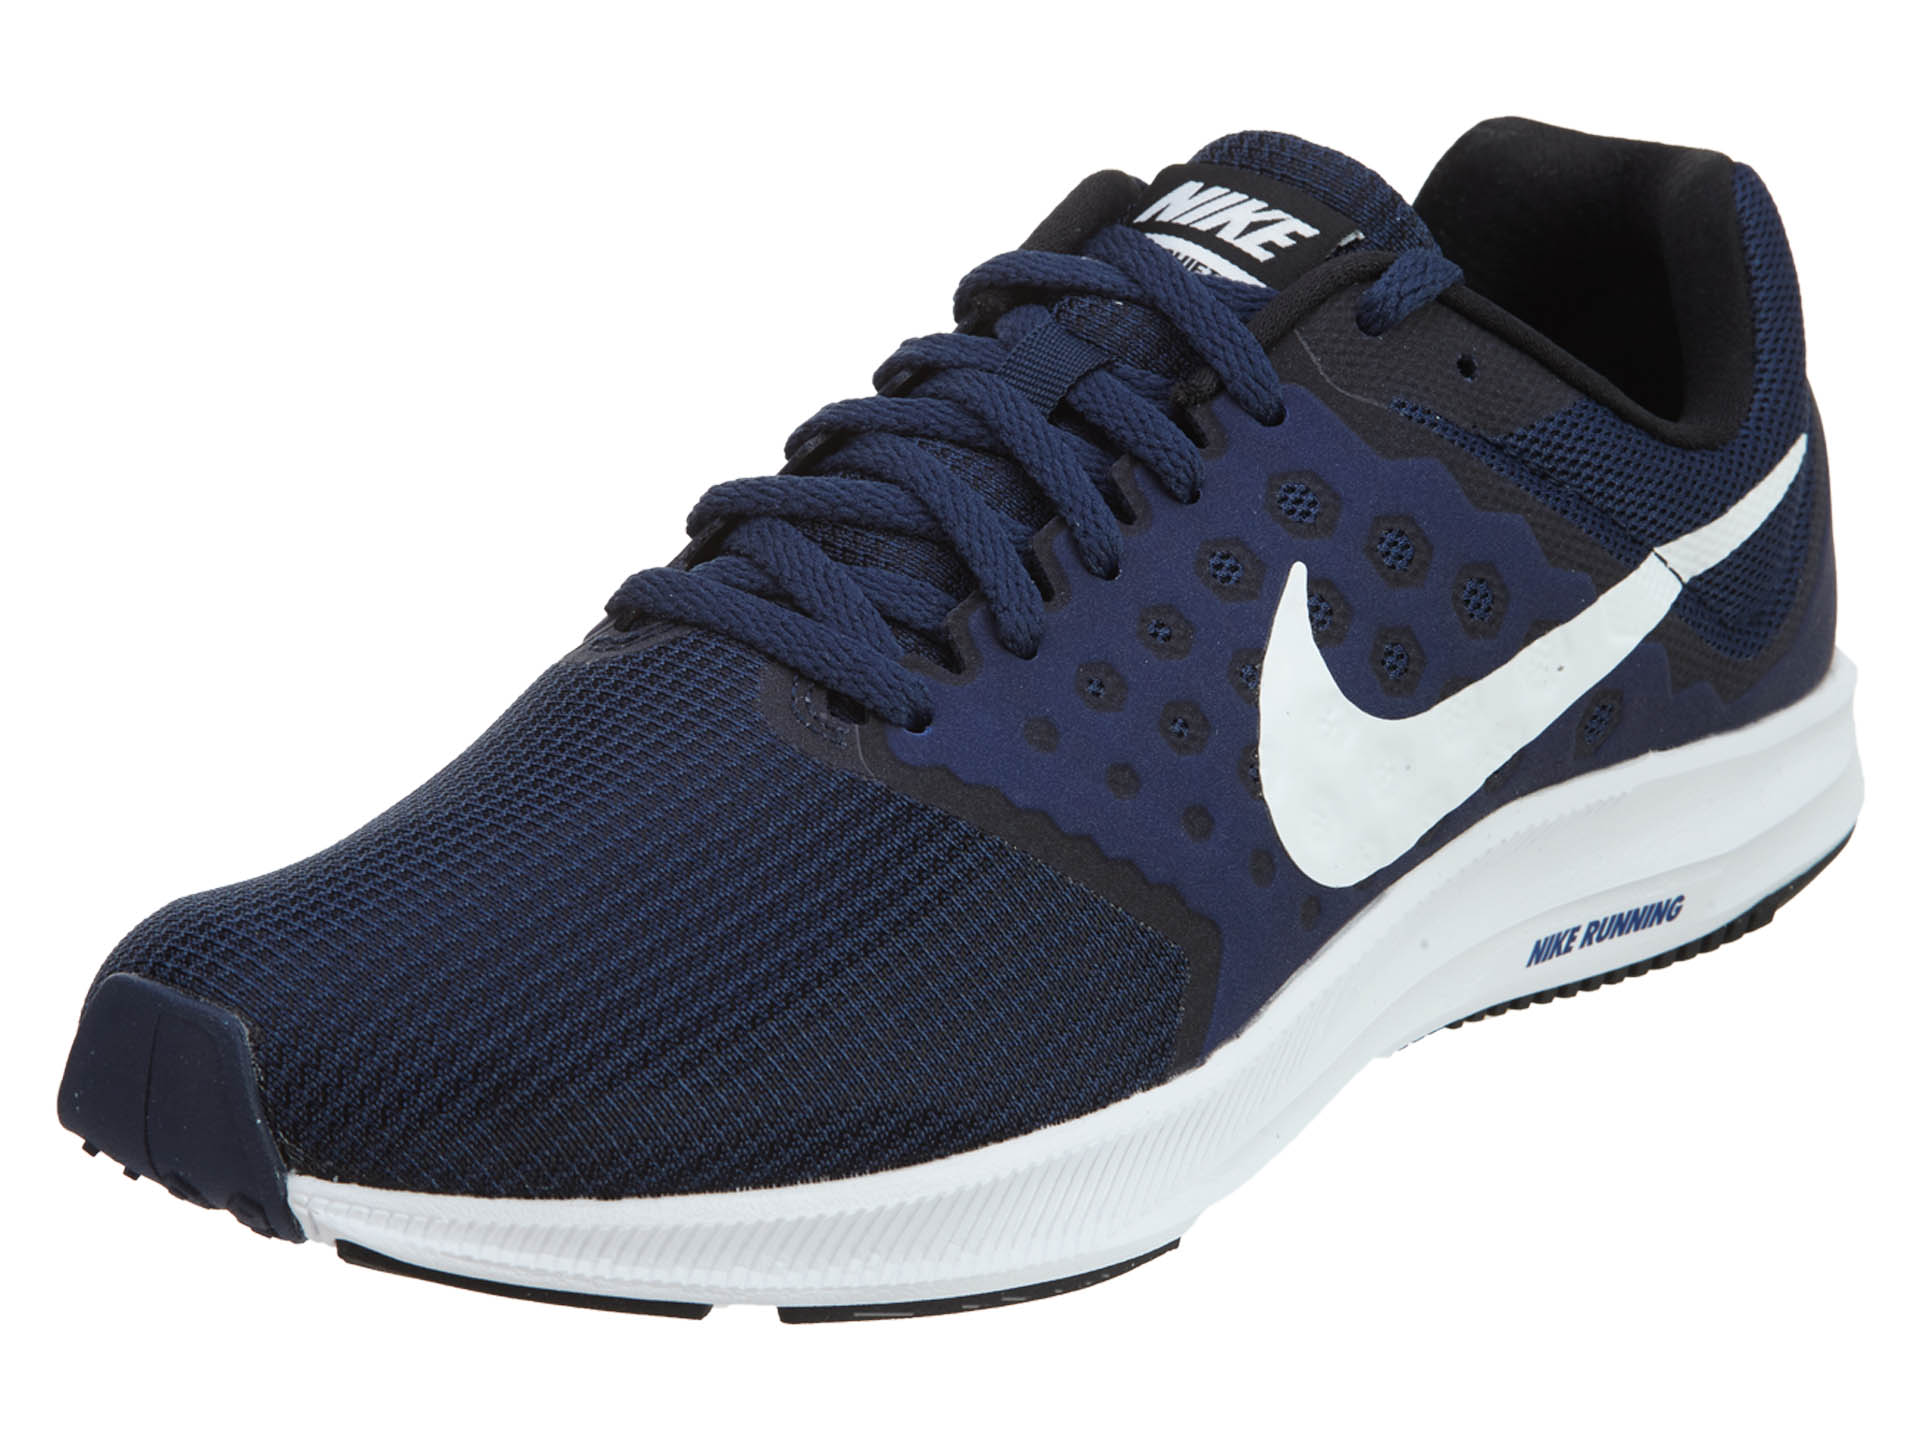 55bbf83d020 Nike Mens Downshifter 7 Running Shoes 852459-400